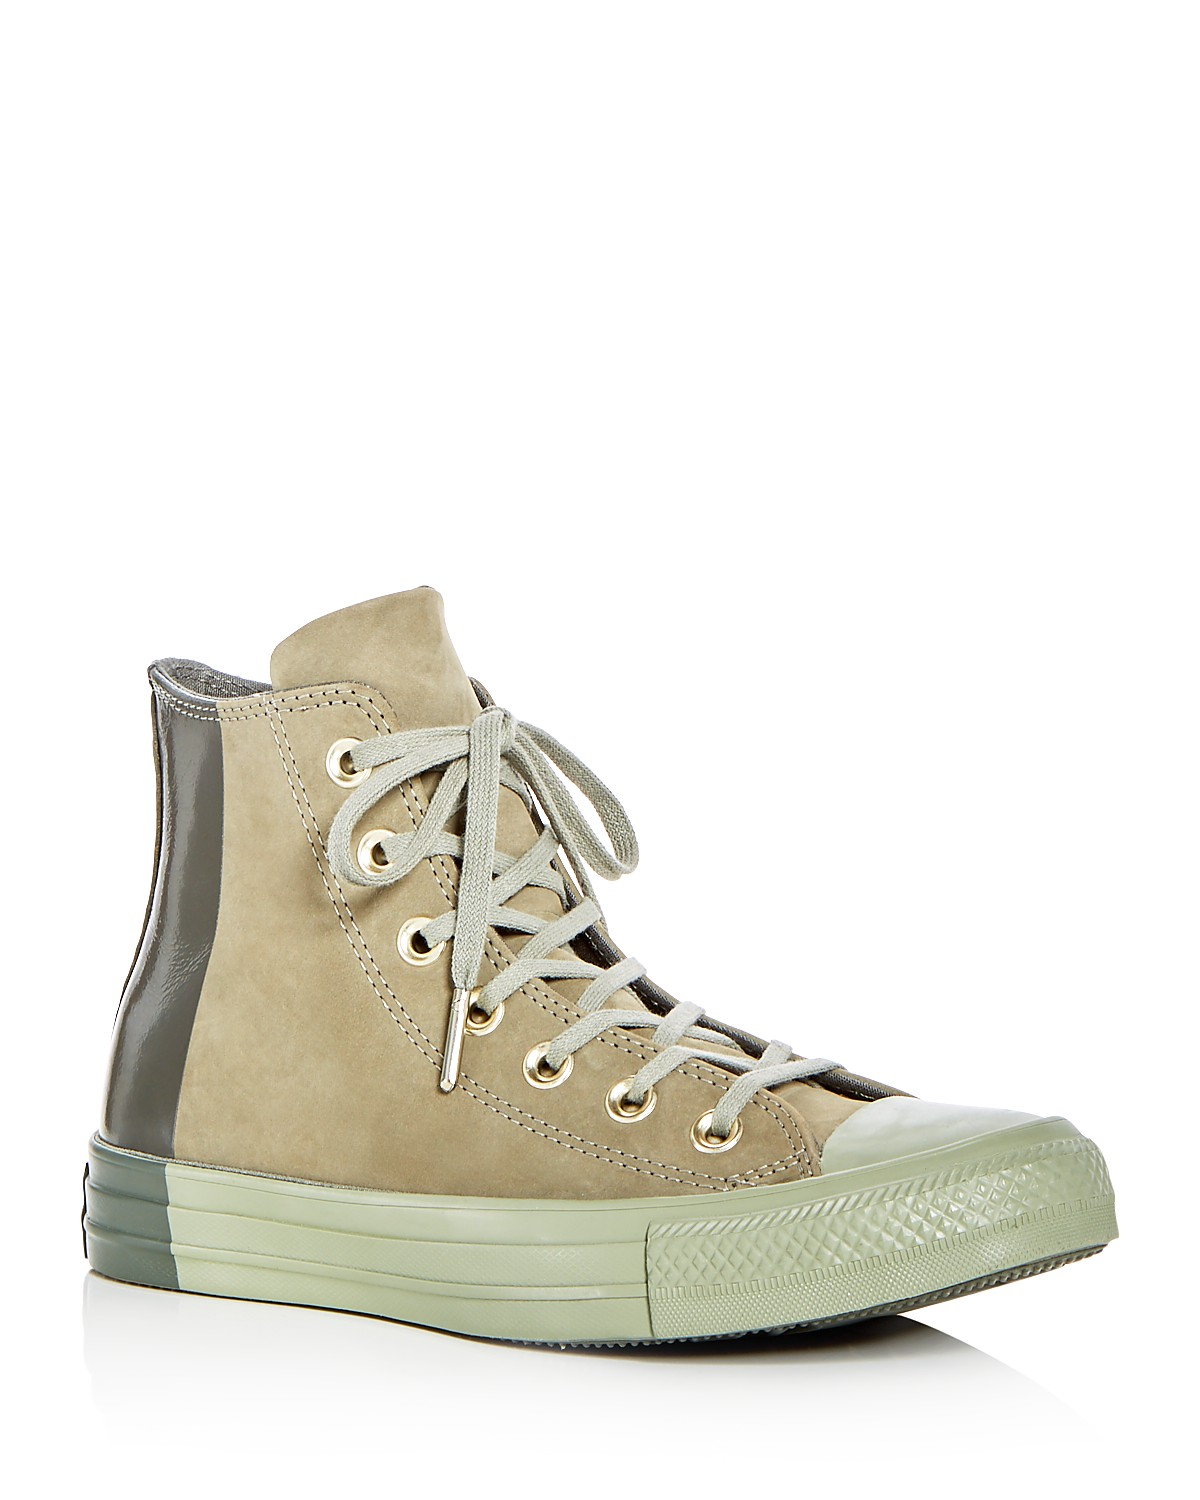 Converse Women's Chuck Taylor All Star Tonal Nubuck Leather Lace Up Sneakers uGFmm5